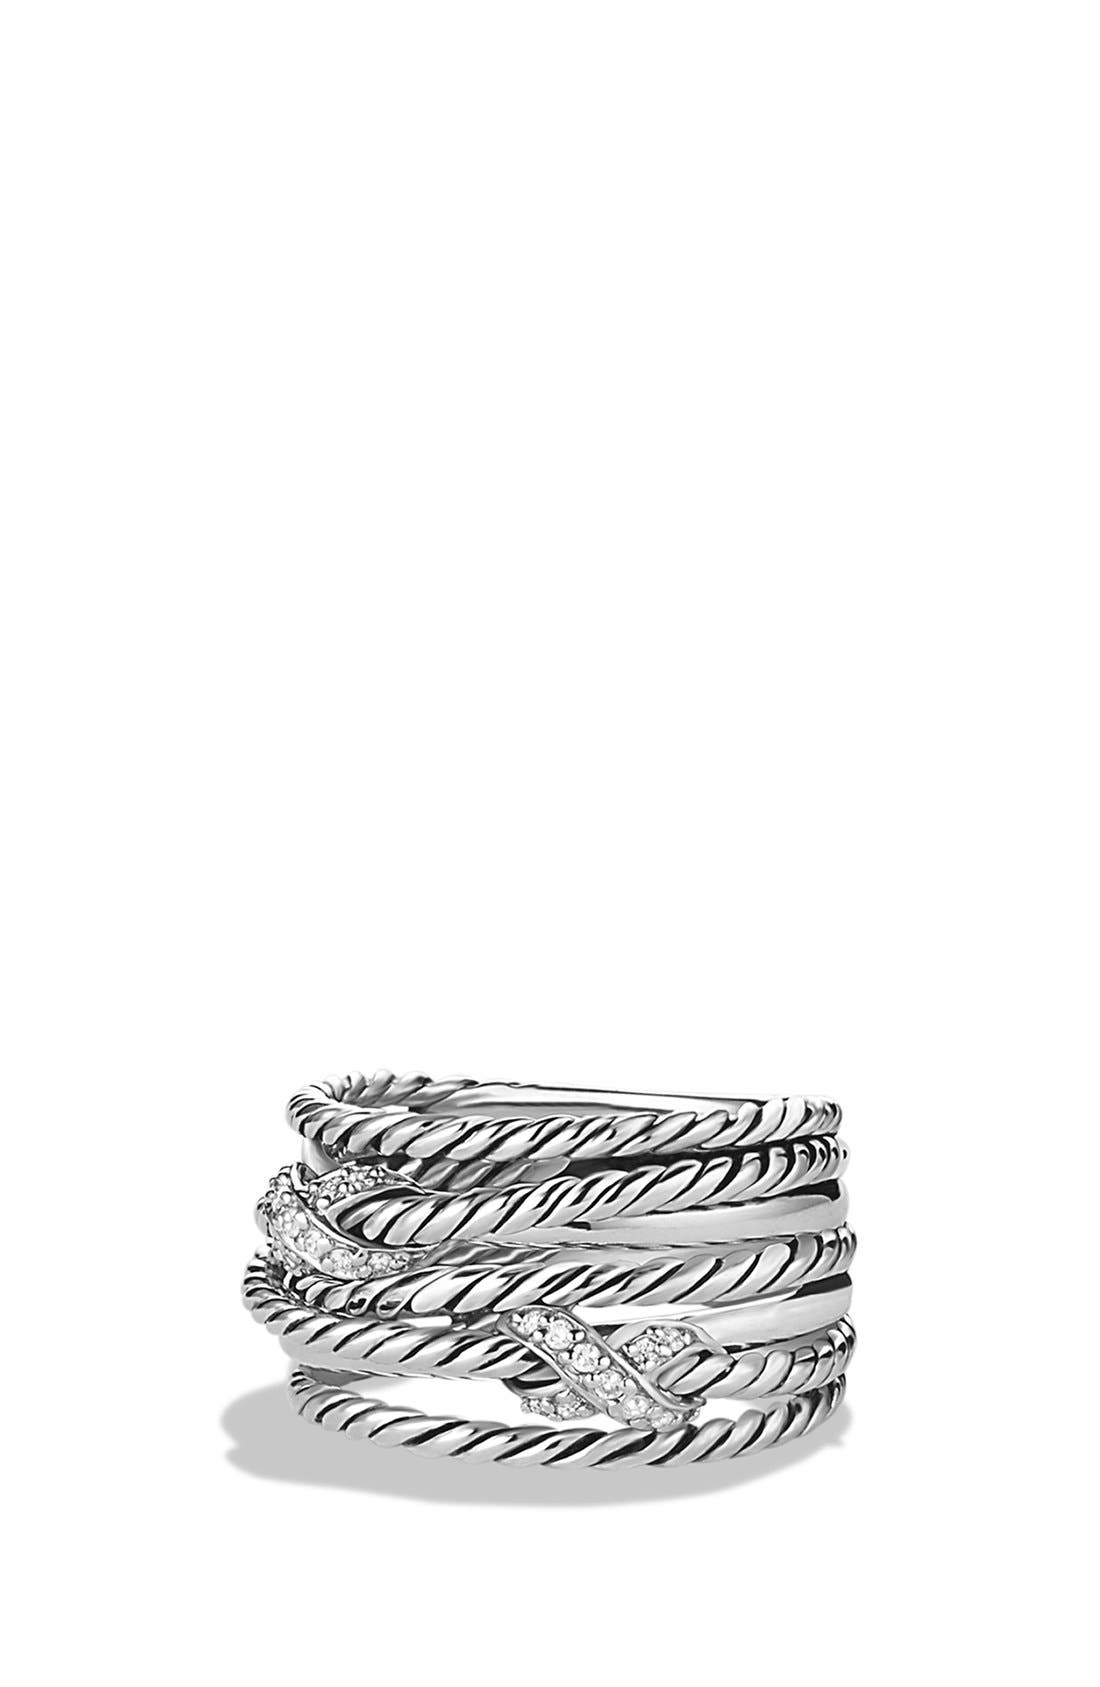 Main Image - David Yurman Double 'X Crossover' Ring with Diamonds